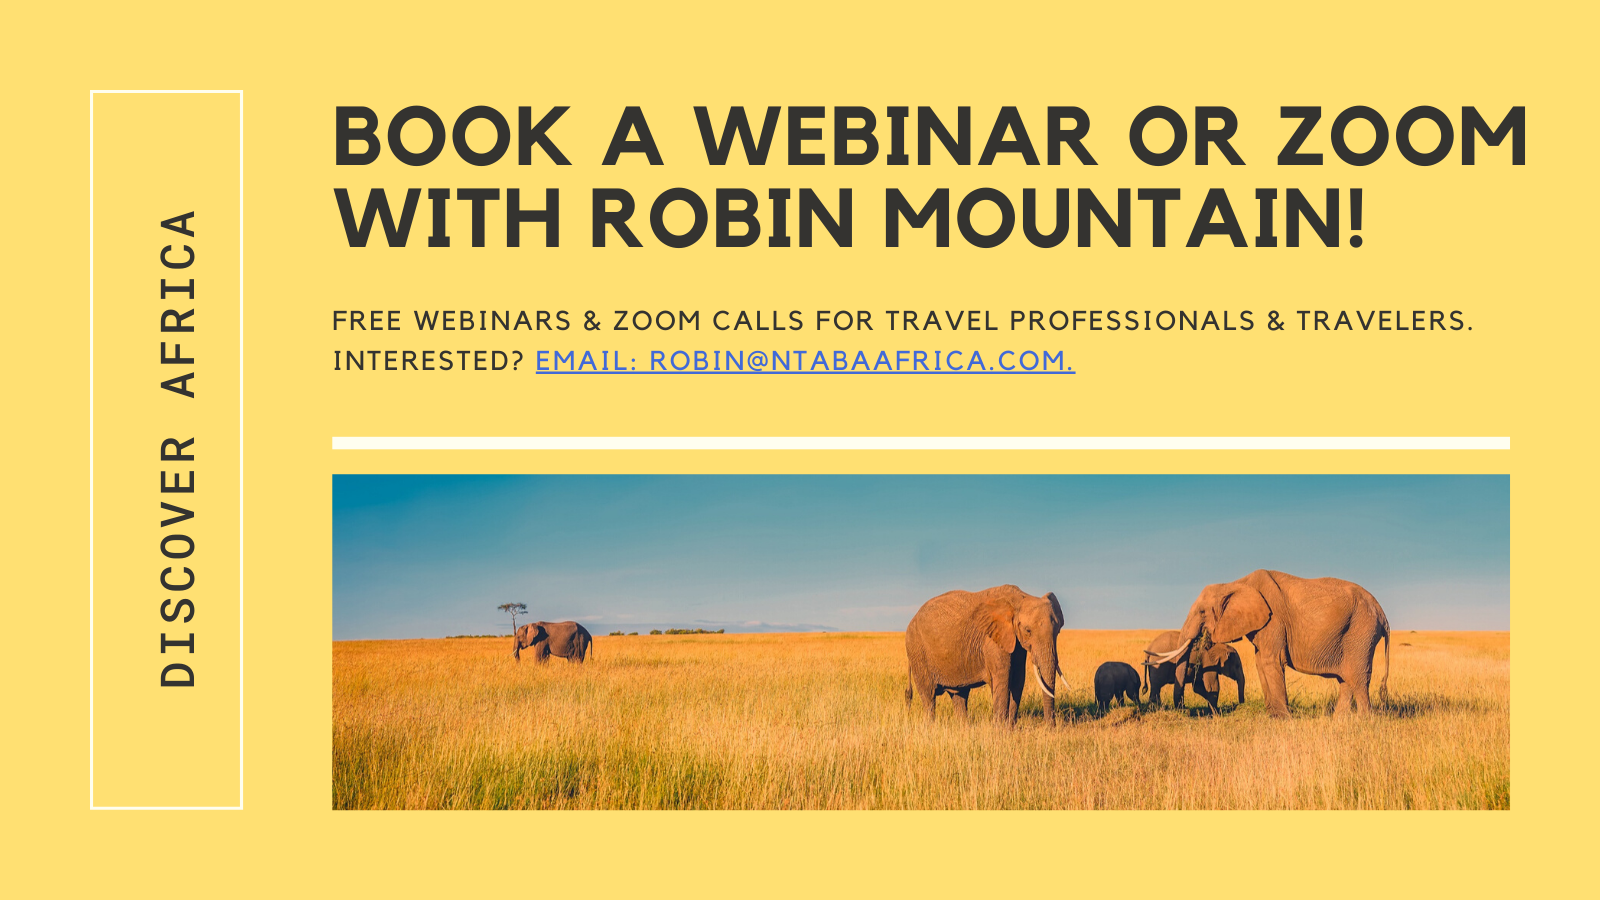 WEBINAR WITH ROBIN